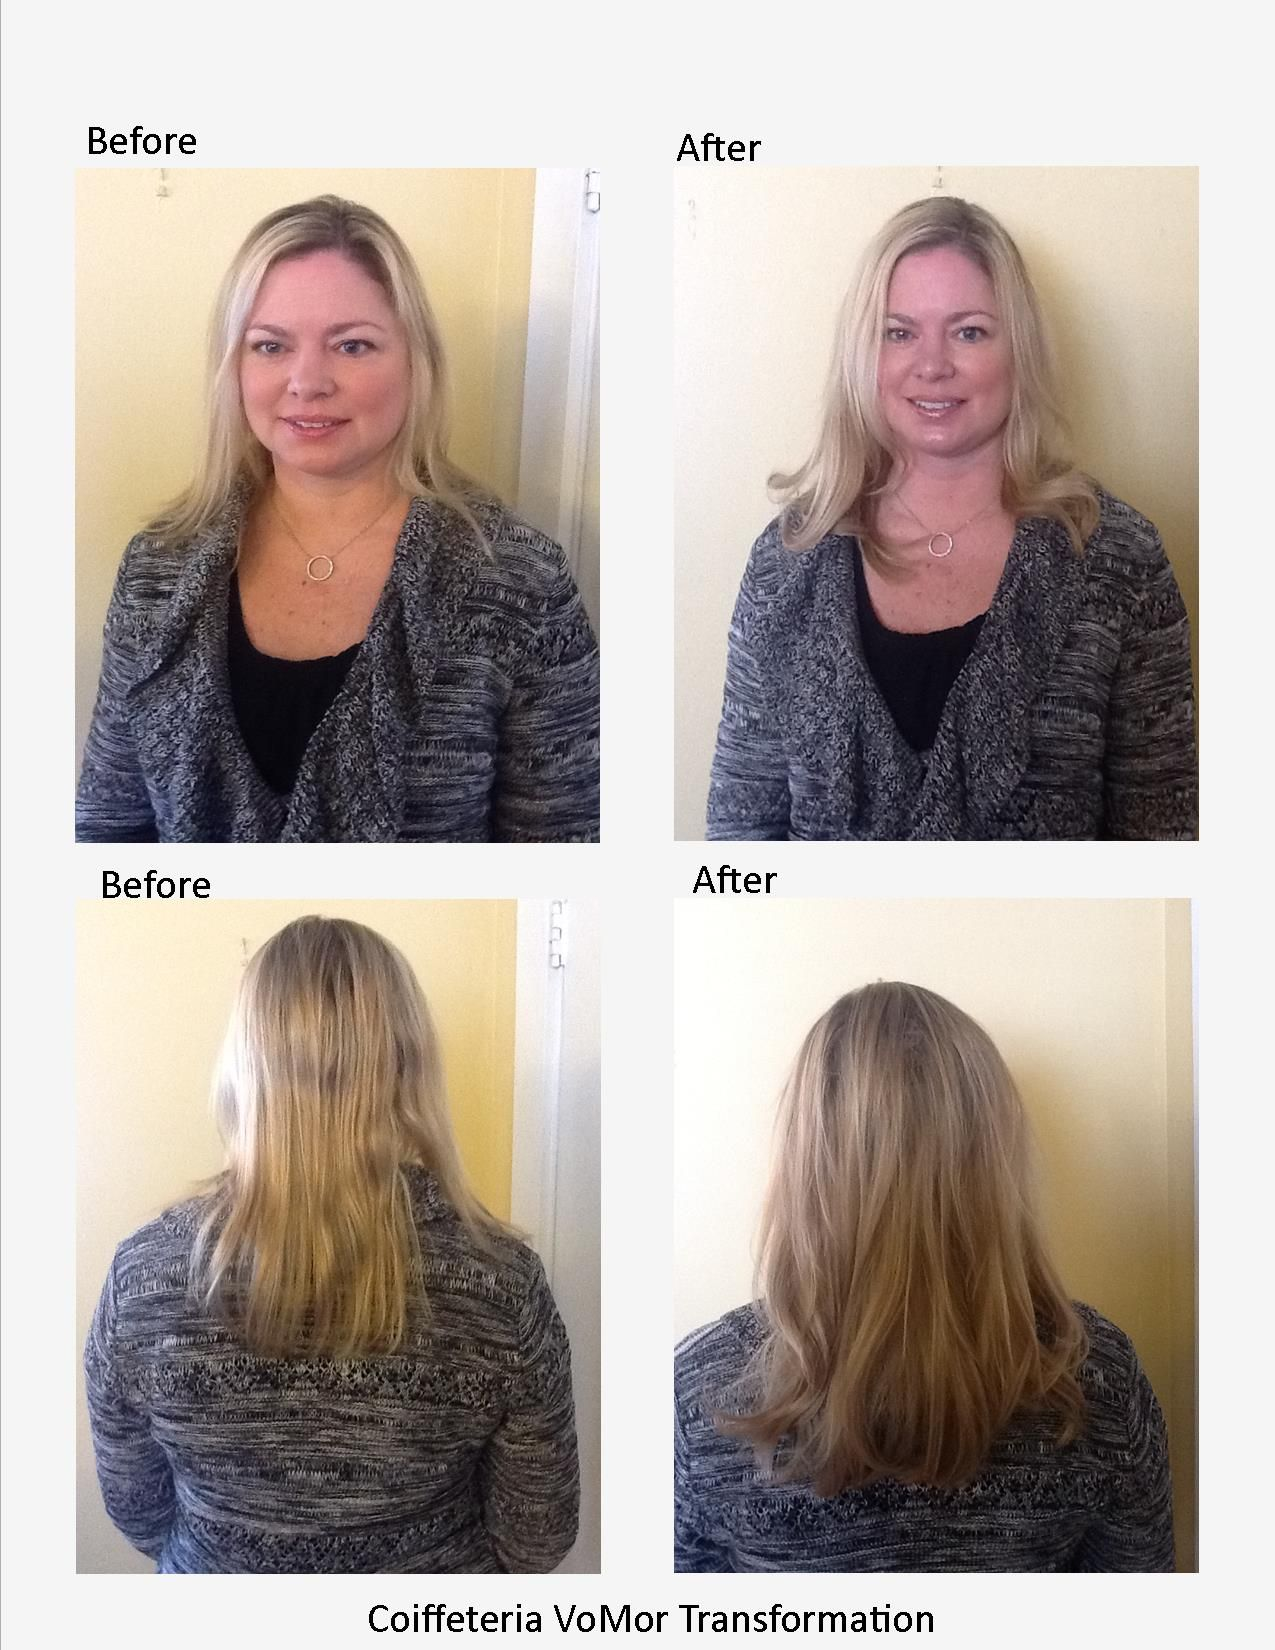 Before And After Photo From Coiffeteria Salon In Grand Rapids